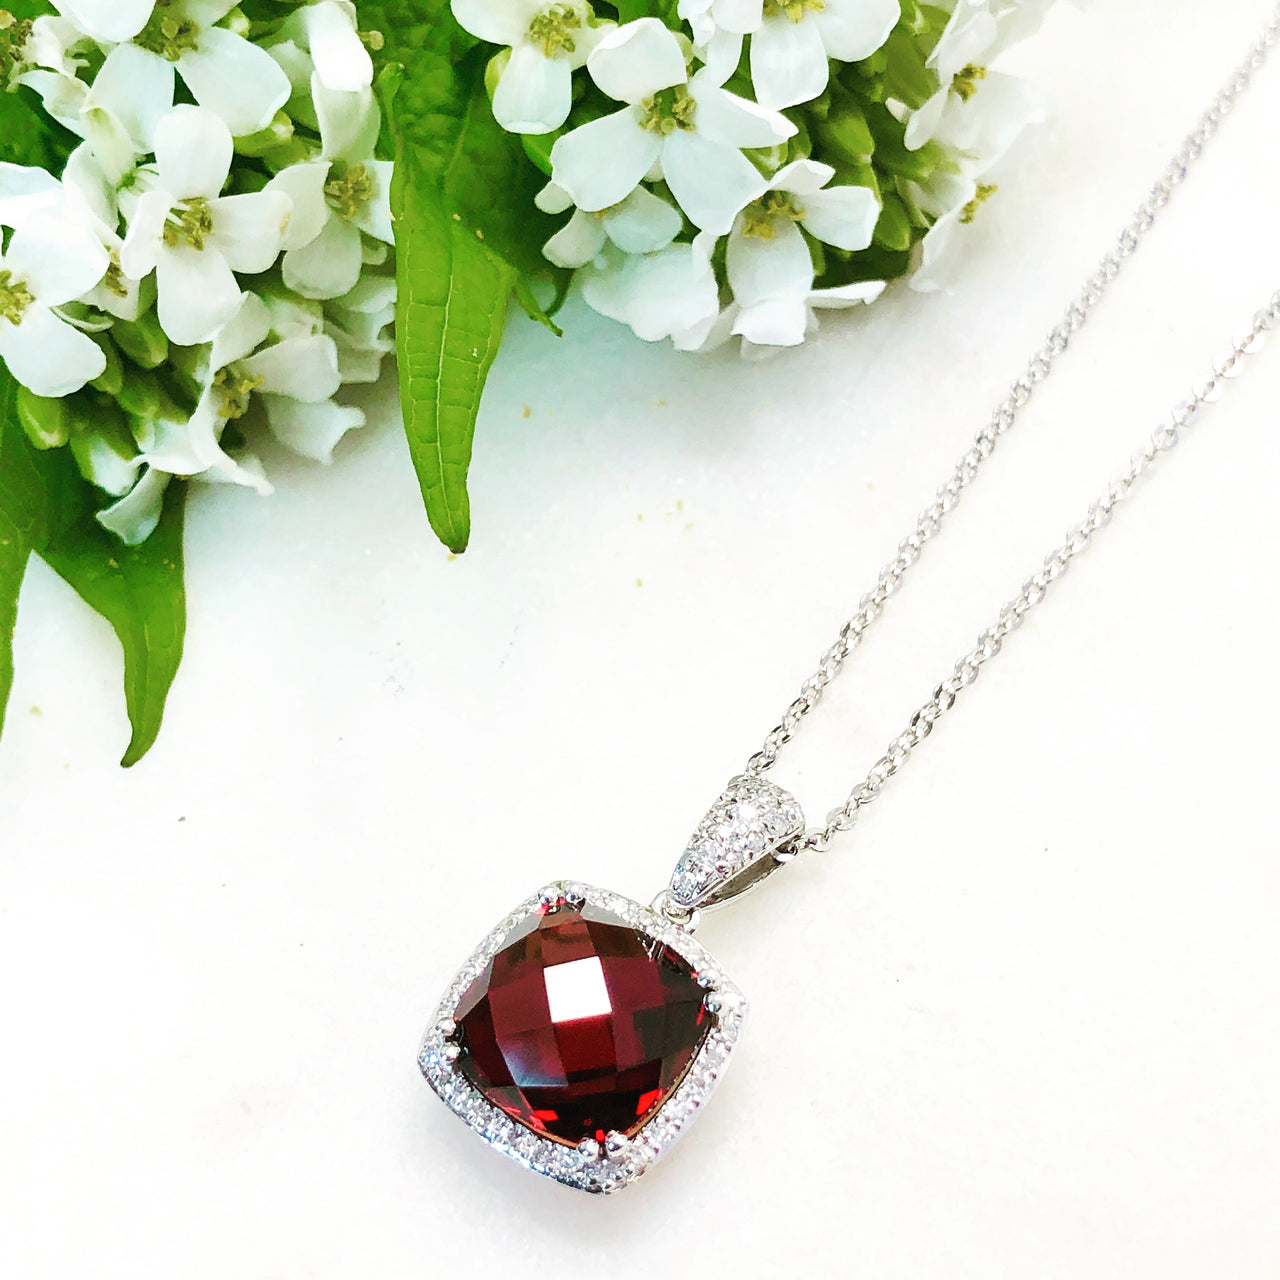 14K White Gold Garnet and Diamond Necklace.